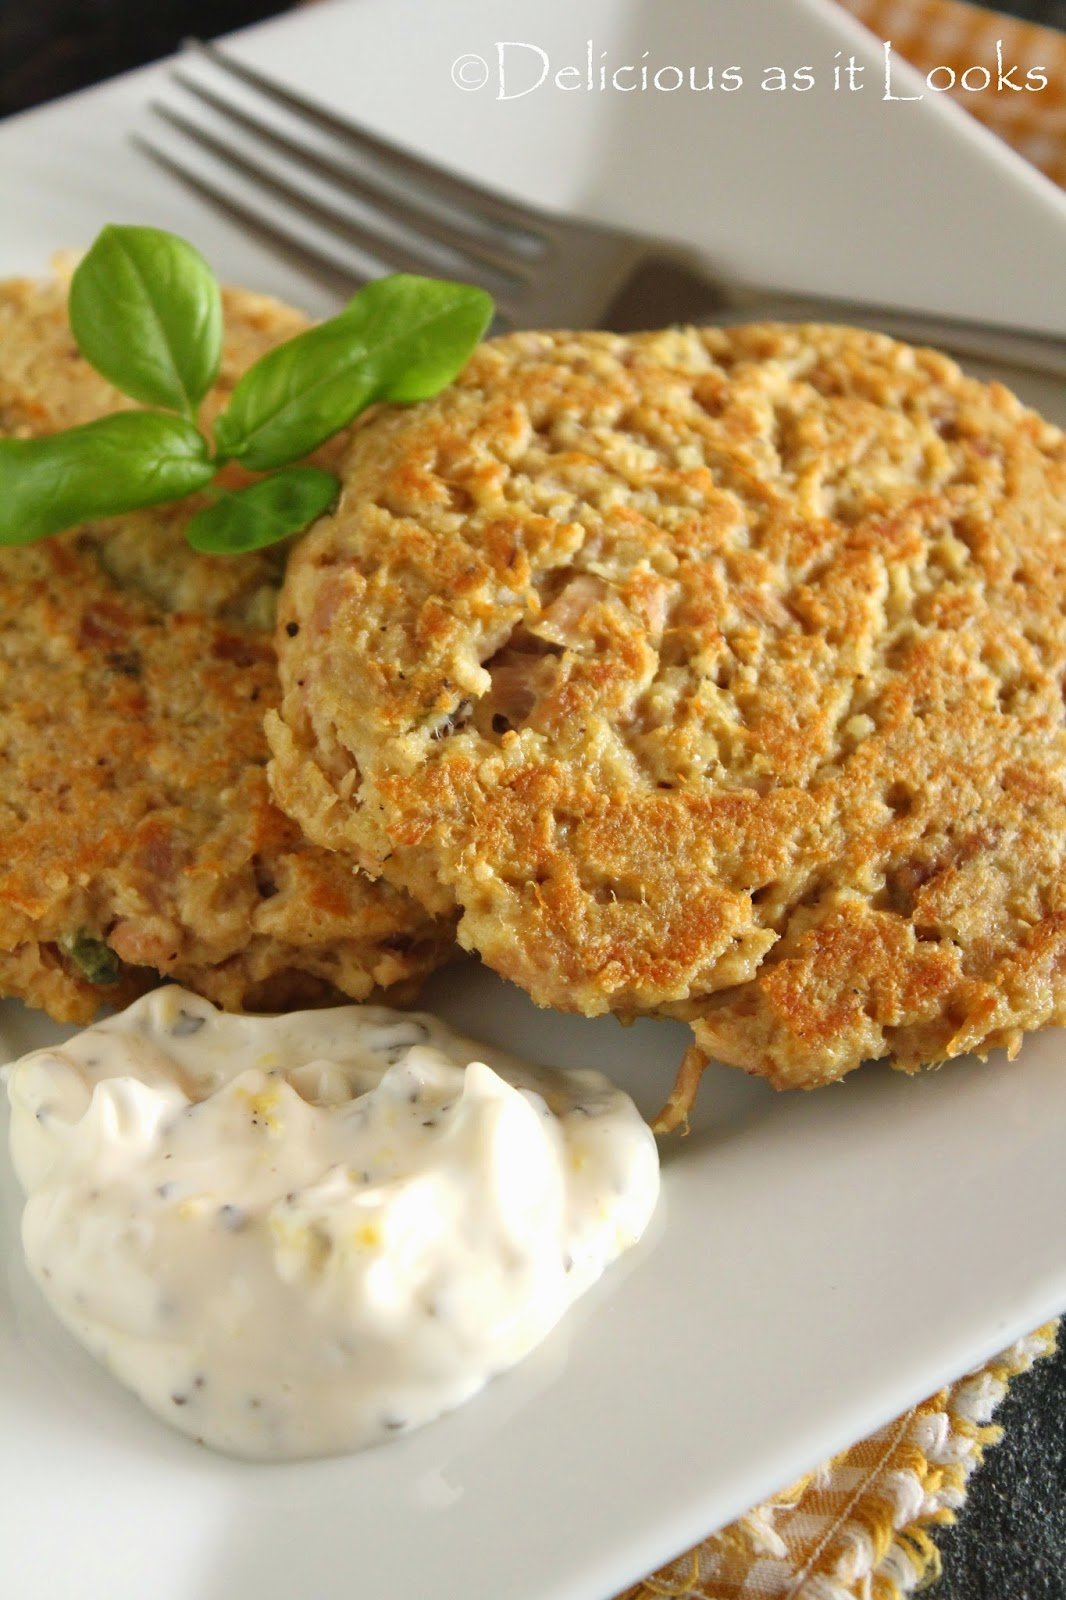 Low-FODMAP Recipe Roundup: Friday Fish Fry {Quinoa Tuna Patties with Lemon Basil Mayo}  /  Delicious as it Looks